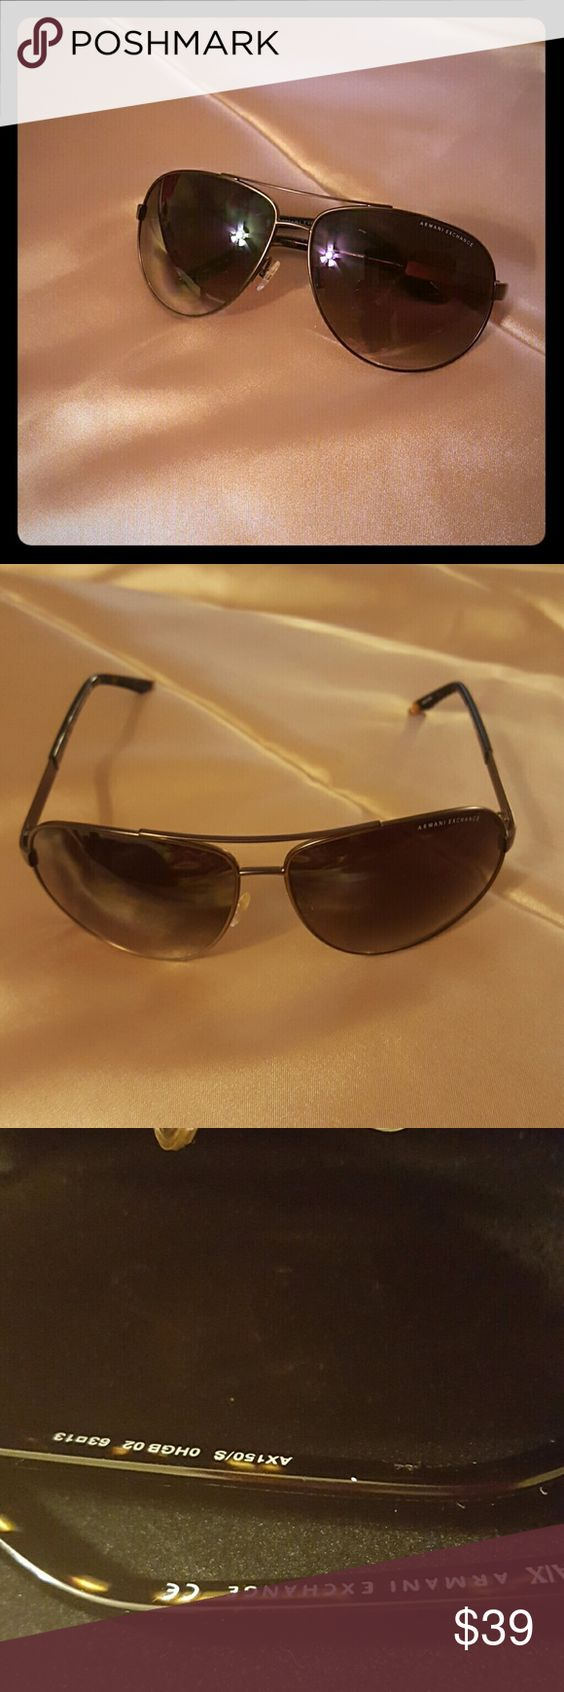 Aviator AIX Armani Exchange sunglasses Very nice light and dark brown with brown metal frame. comes with red velvet box it's New but no tags. Armani Exchange Accessories Sunglasses